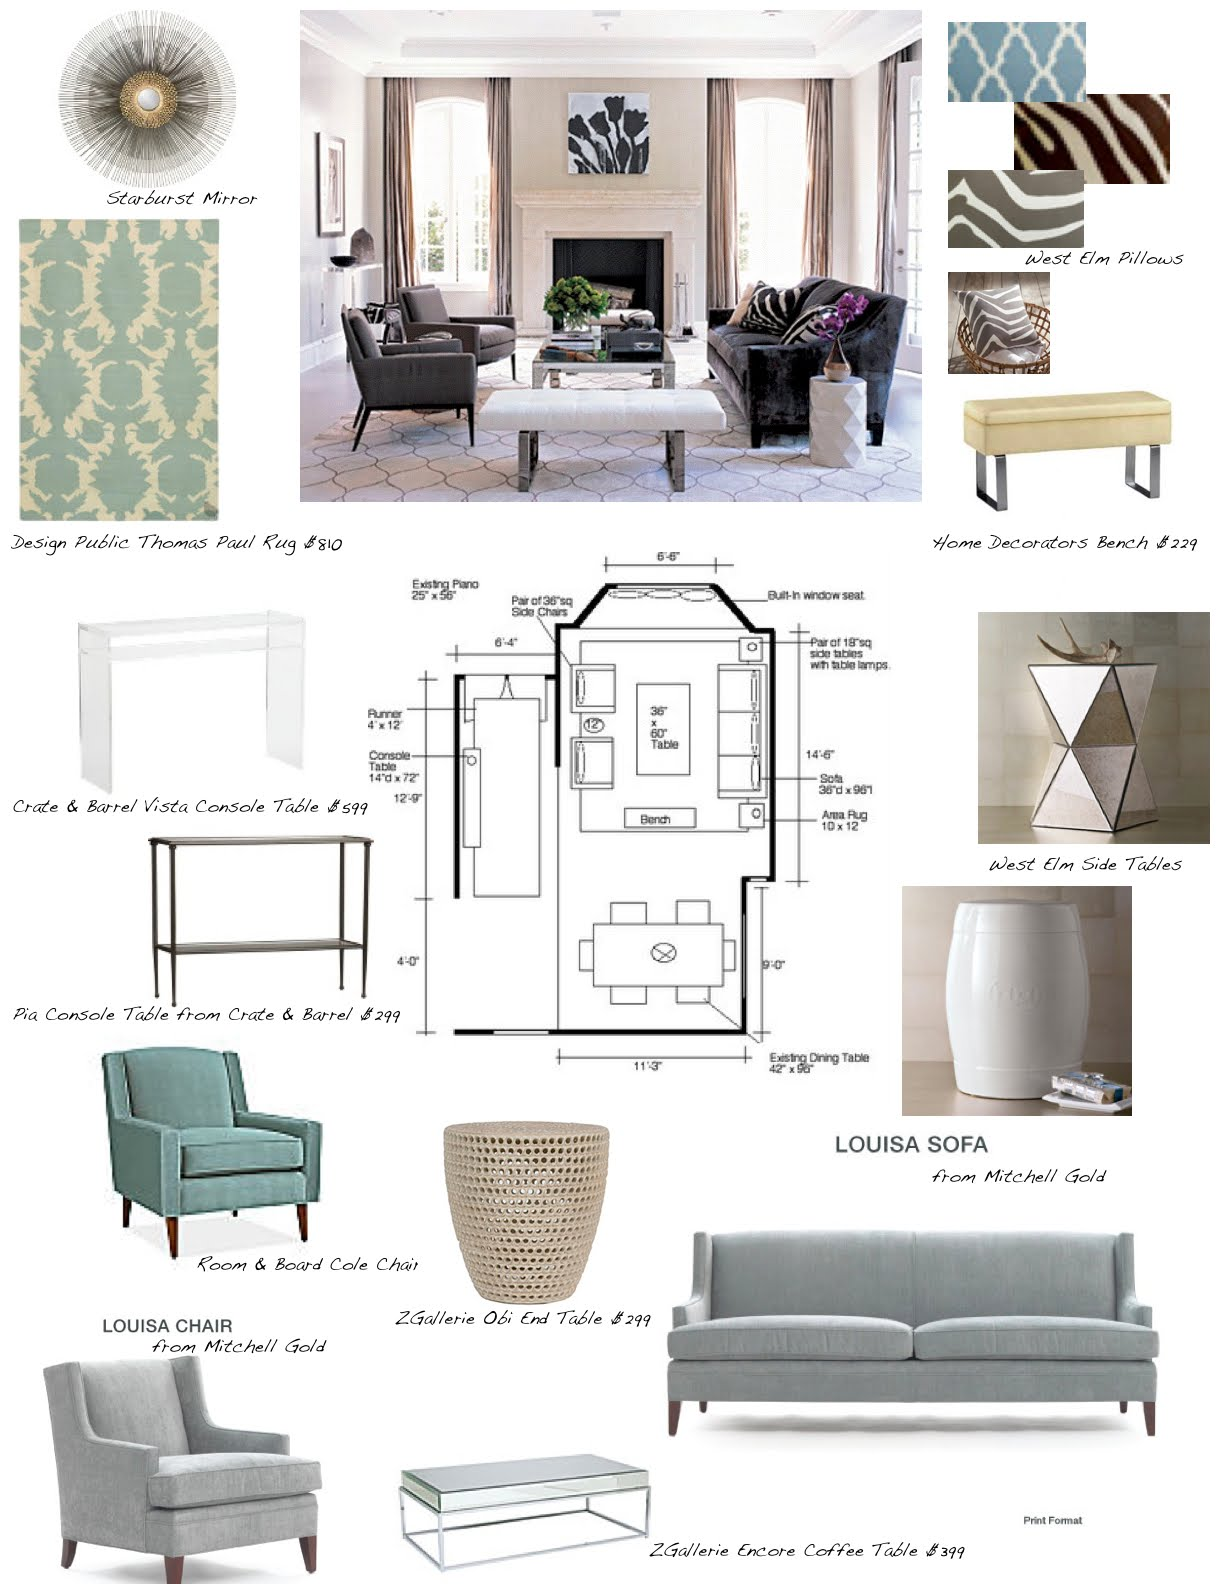 Jill Seidner Interior Design: $450 Flat Rate Per Room ...